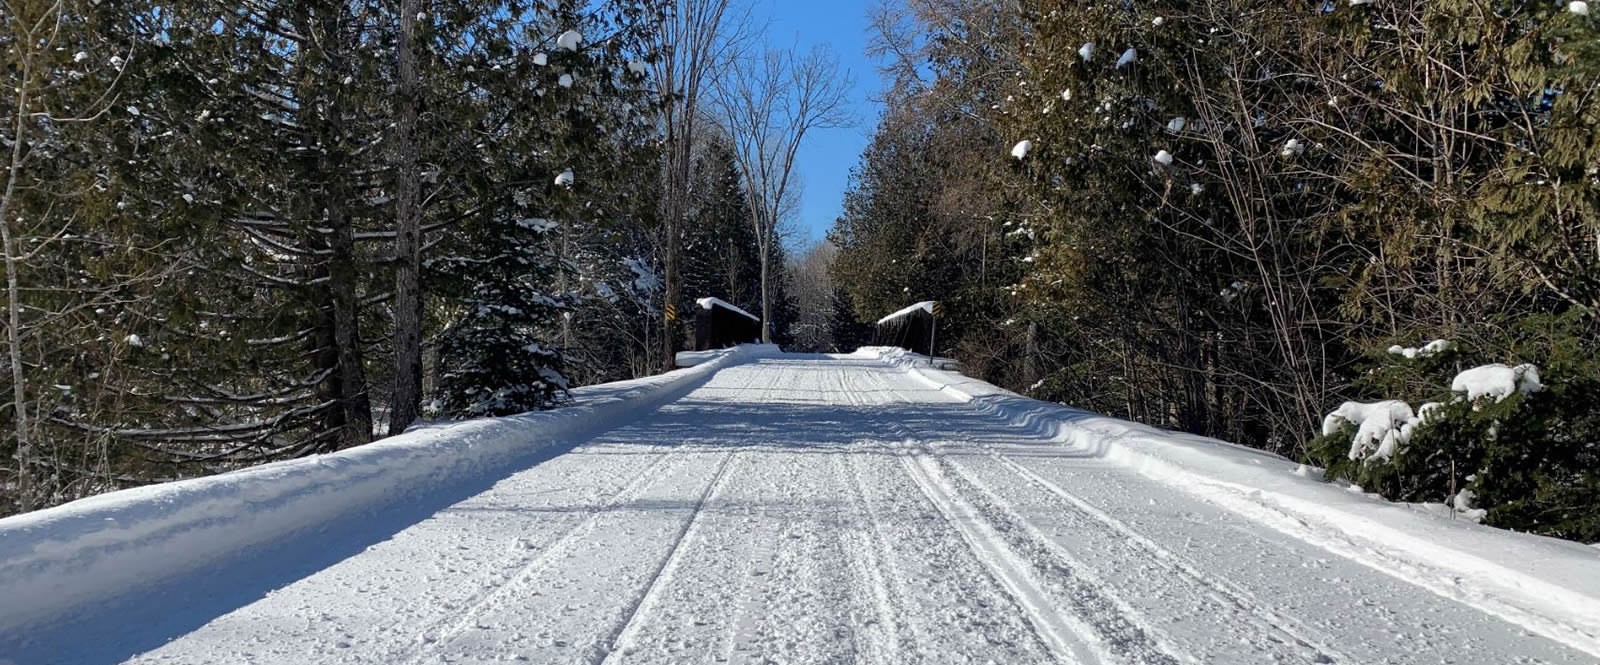 Heritage trail after the groomer went by